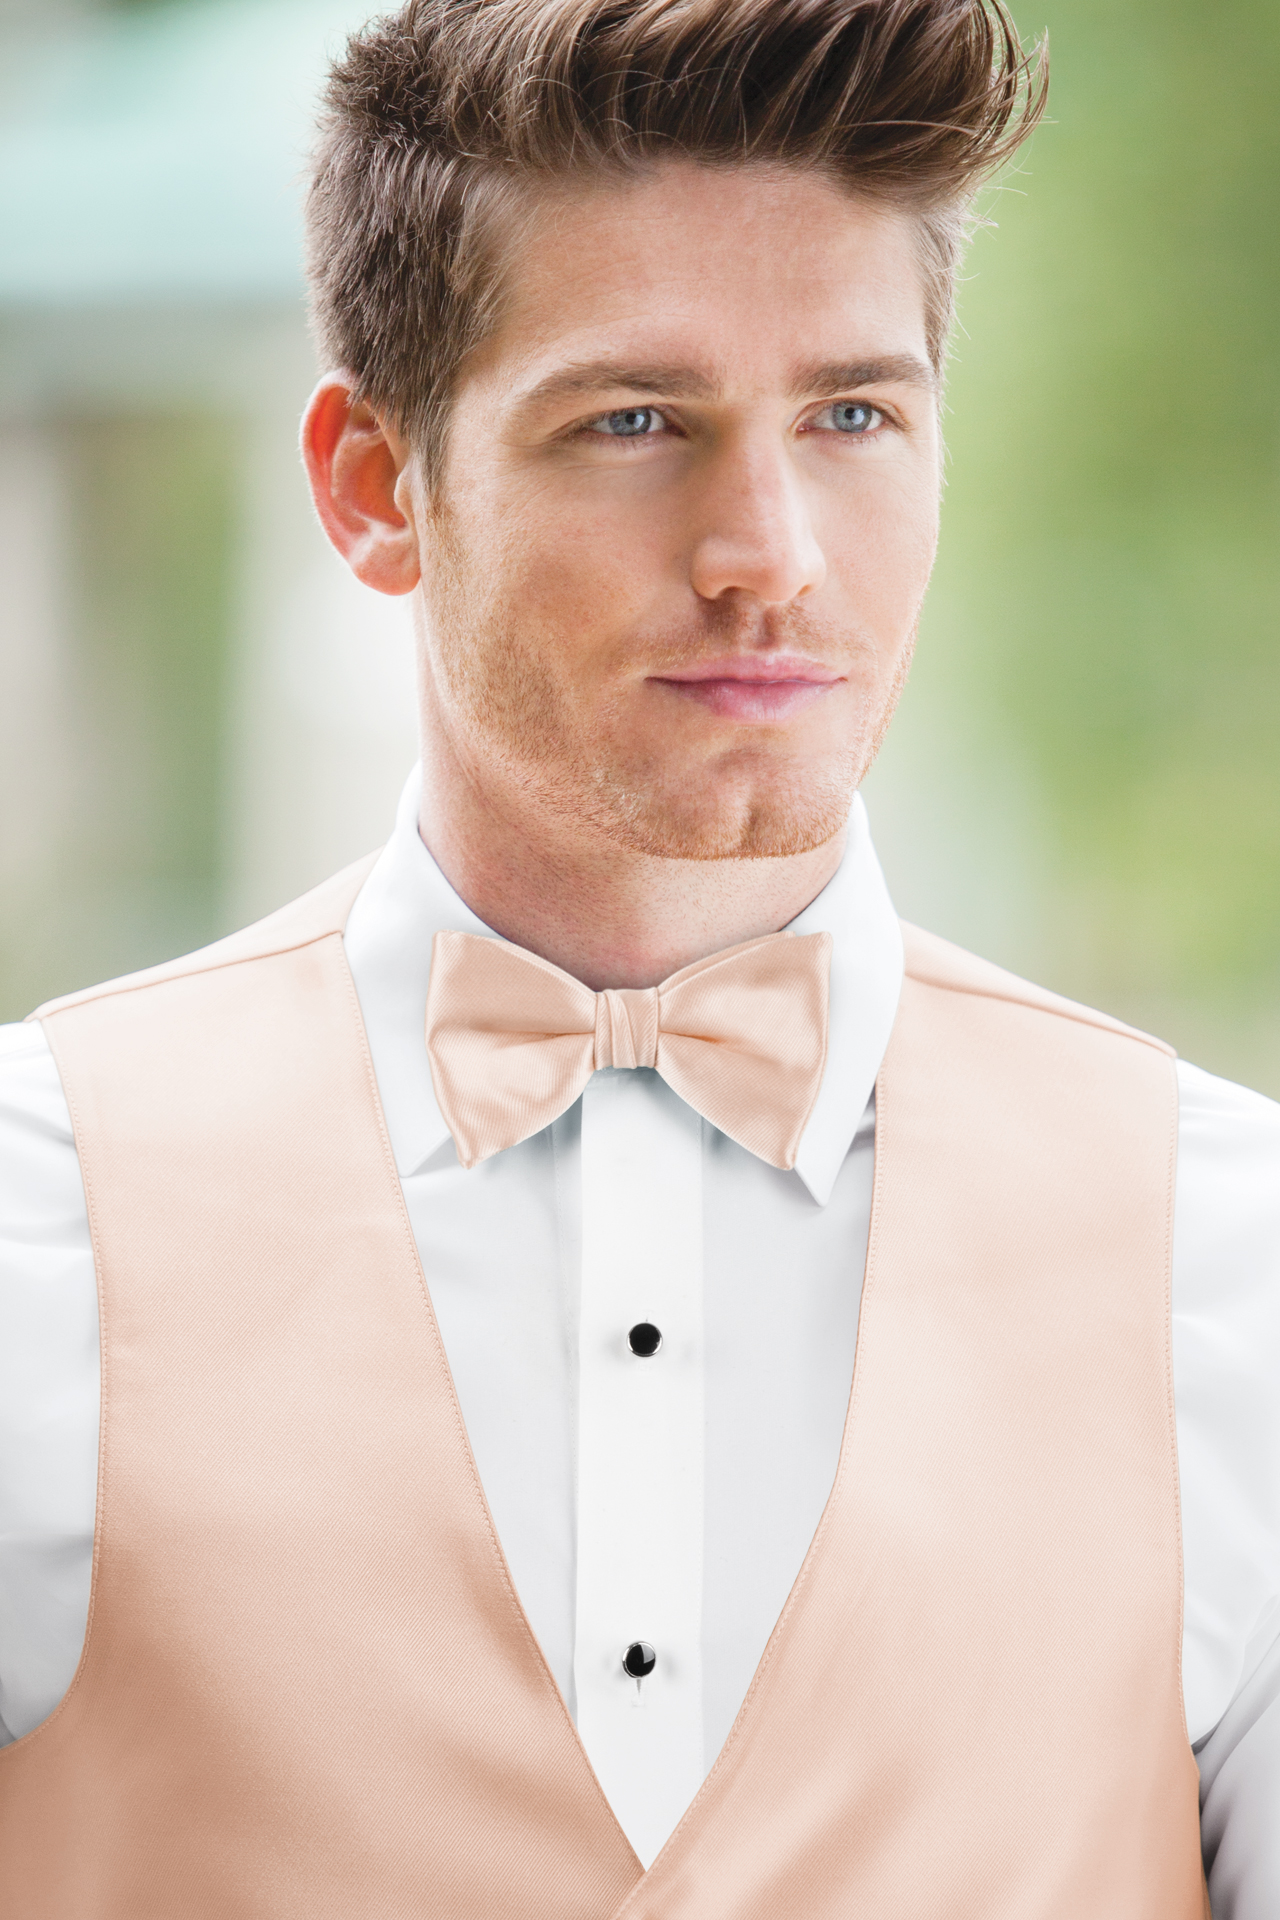 c1a2ceb5608c Expressions Blush Bow Tie | Jim's Formal Wear